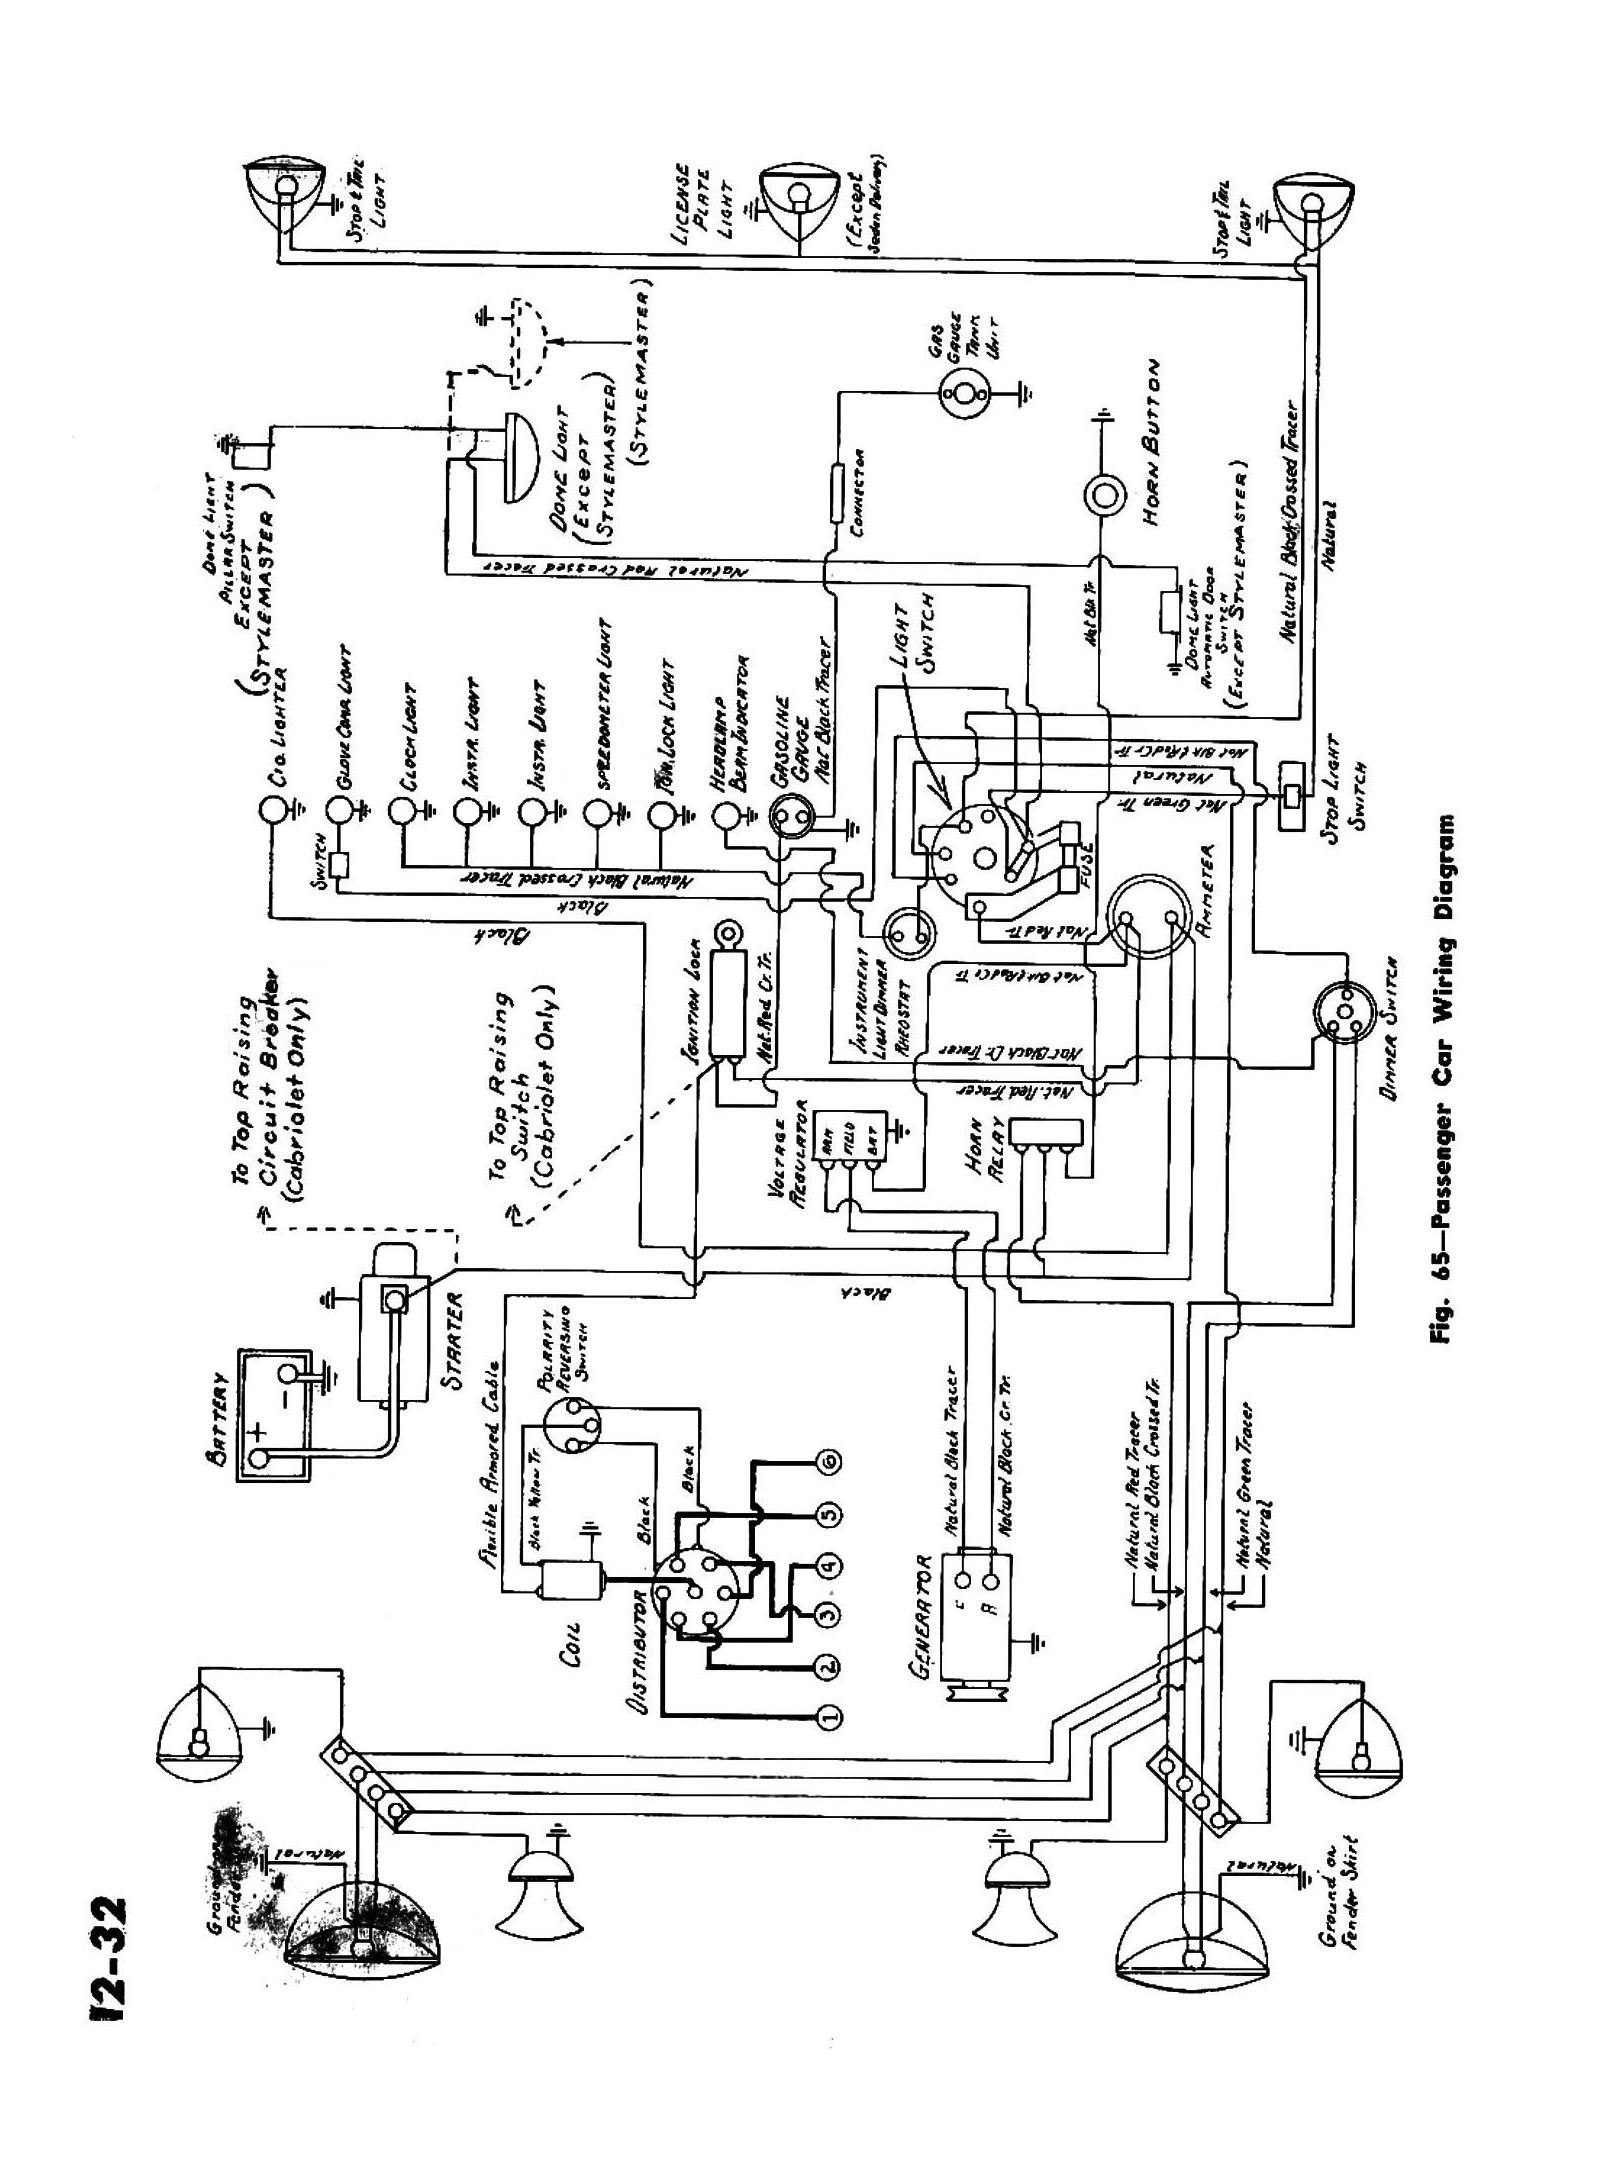 Car Dashboard Wiring Diagram Guide And Troubleshooting Of Simple Chevy Diagrams Rh Oldcarmanualproject Com Interior Labeled